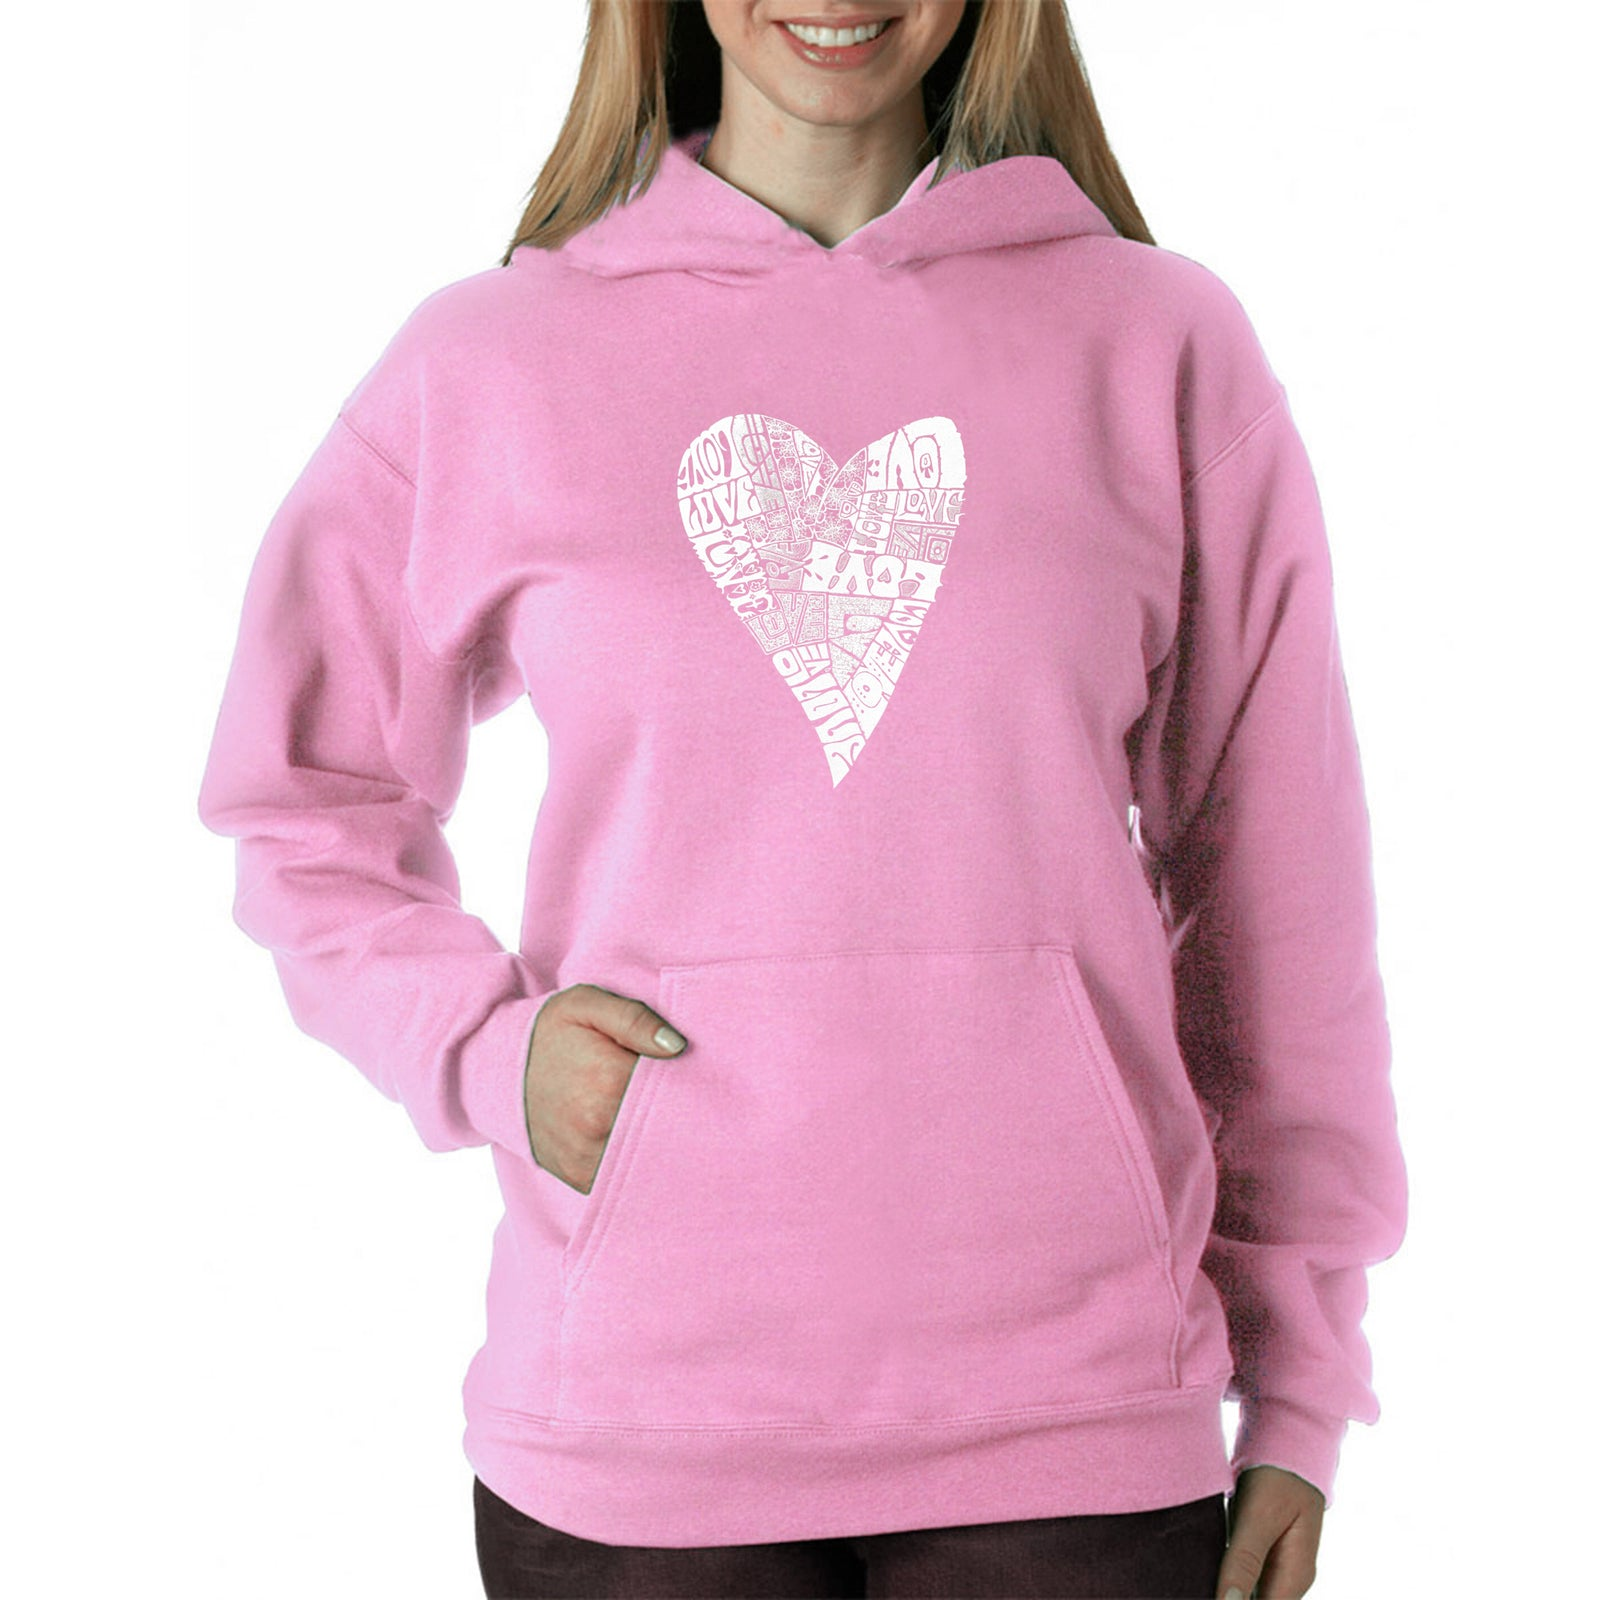 Women's Hooded Sweatshirt -Lots of Love